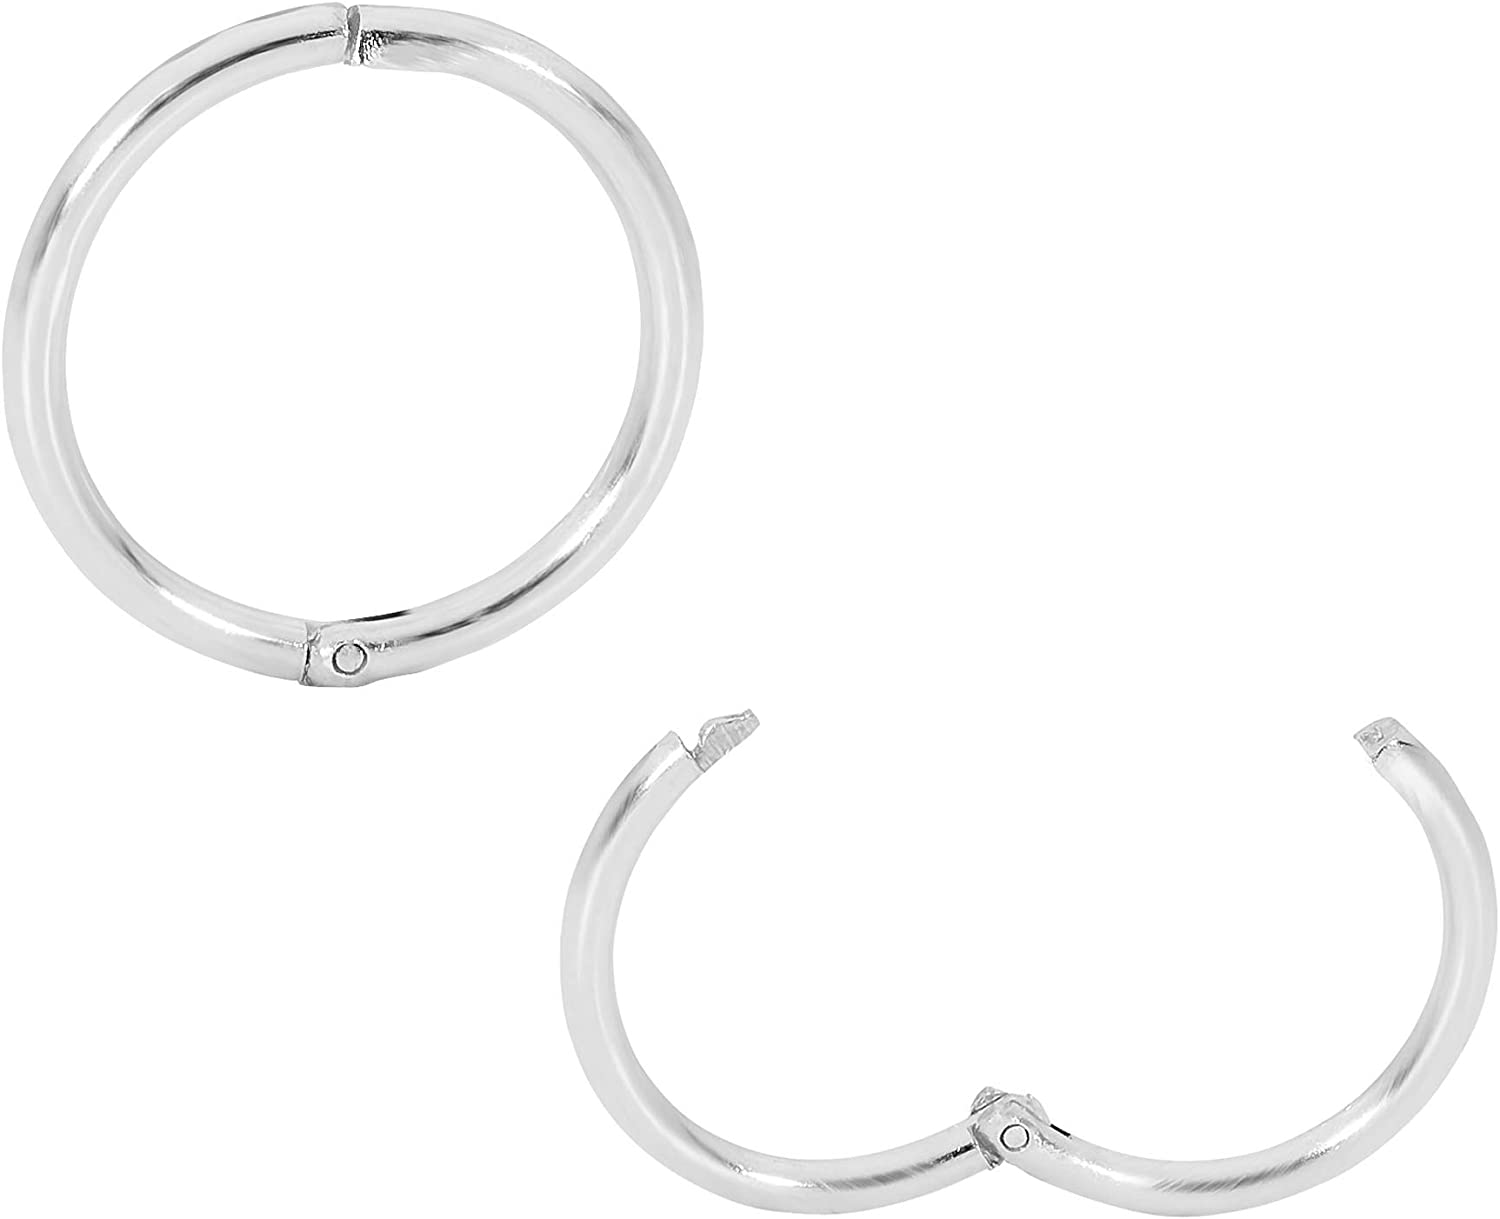 365 Sleepers 1 Pair Solid Sterling Silver 18G Hinged Hoop Sleeper Earrings Made In Australia 8mm / 10mm / 13mm / 16mm / 20mm